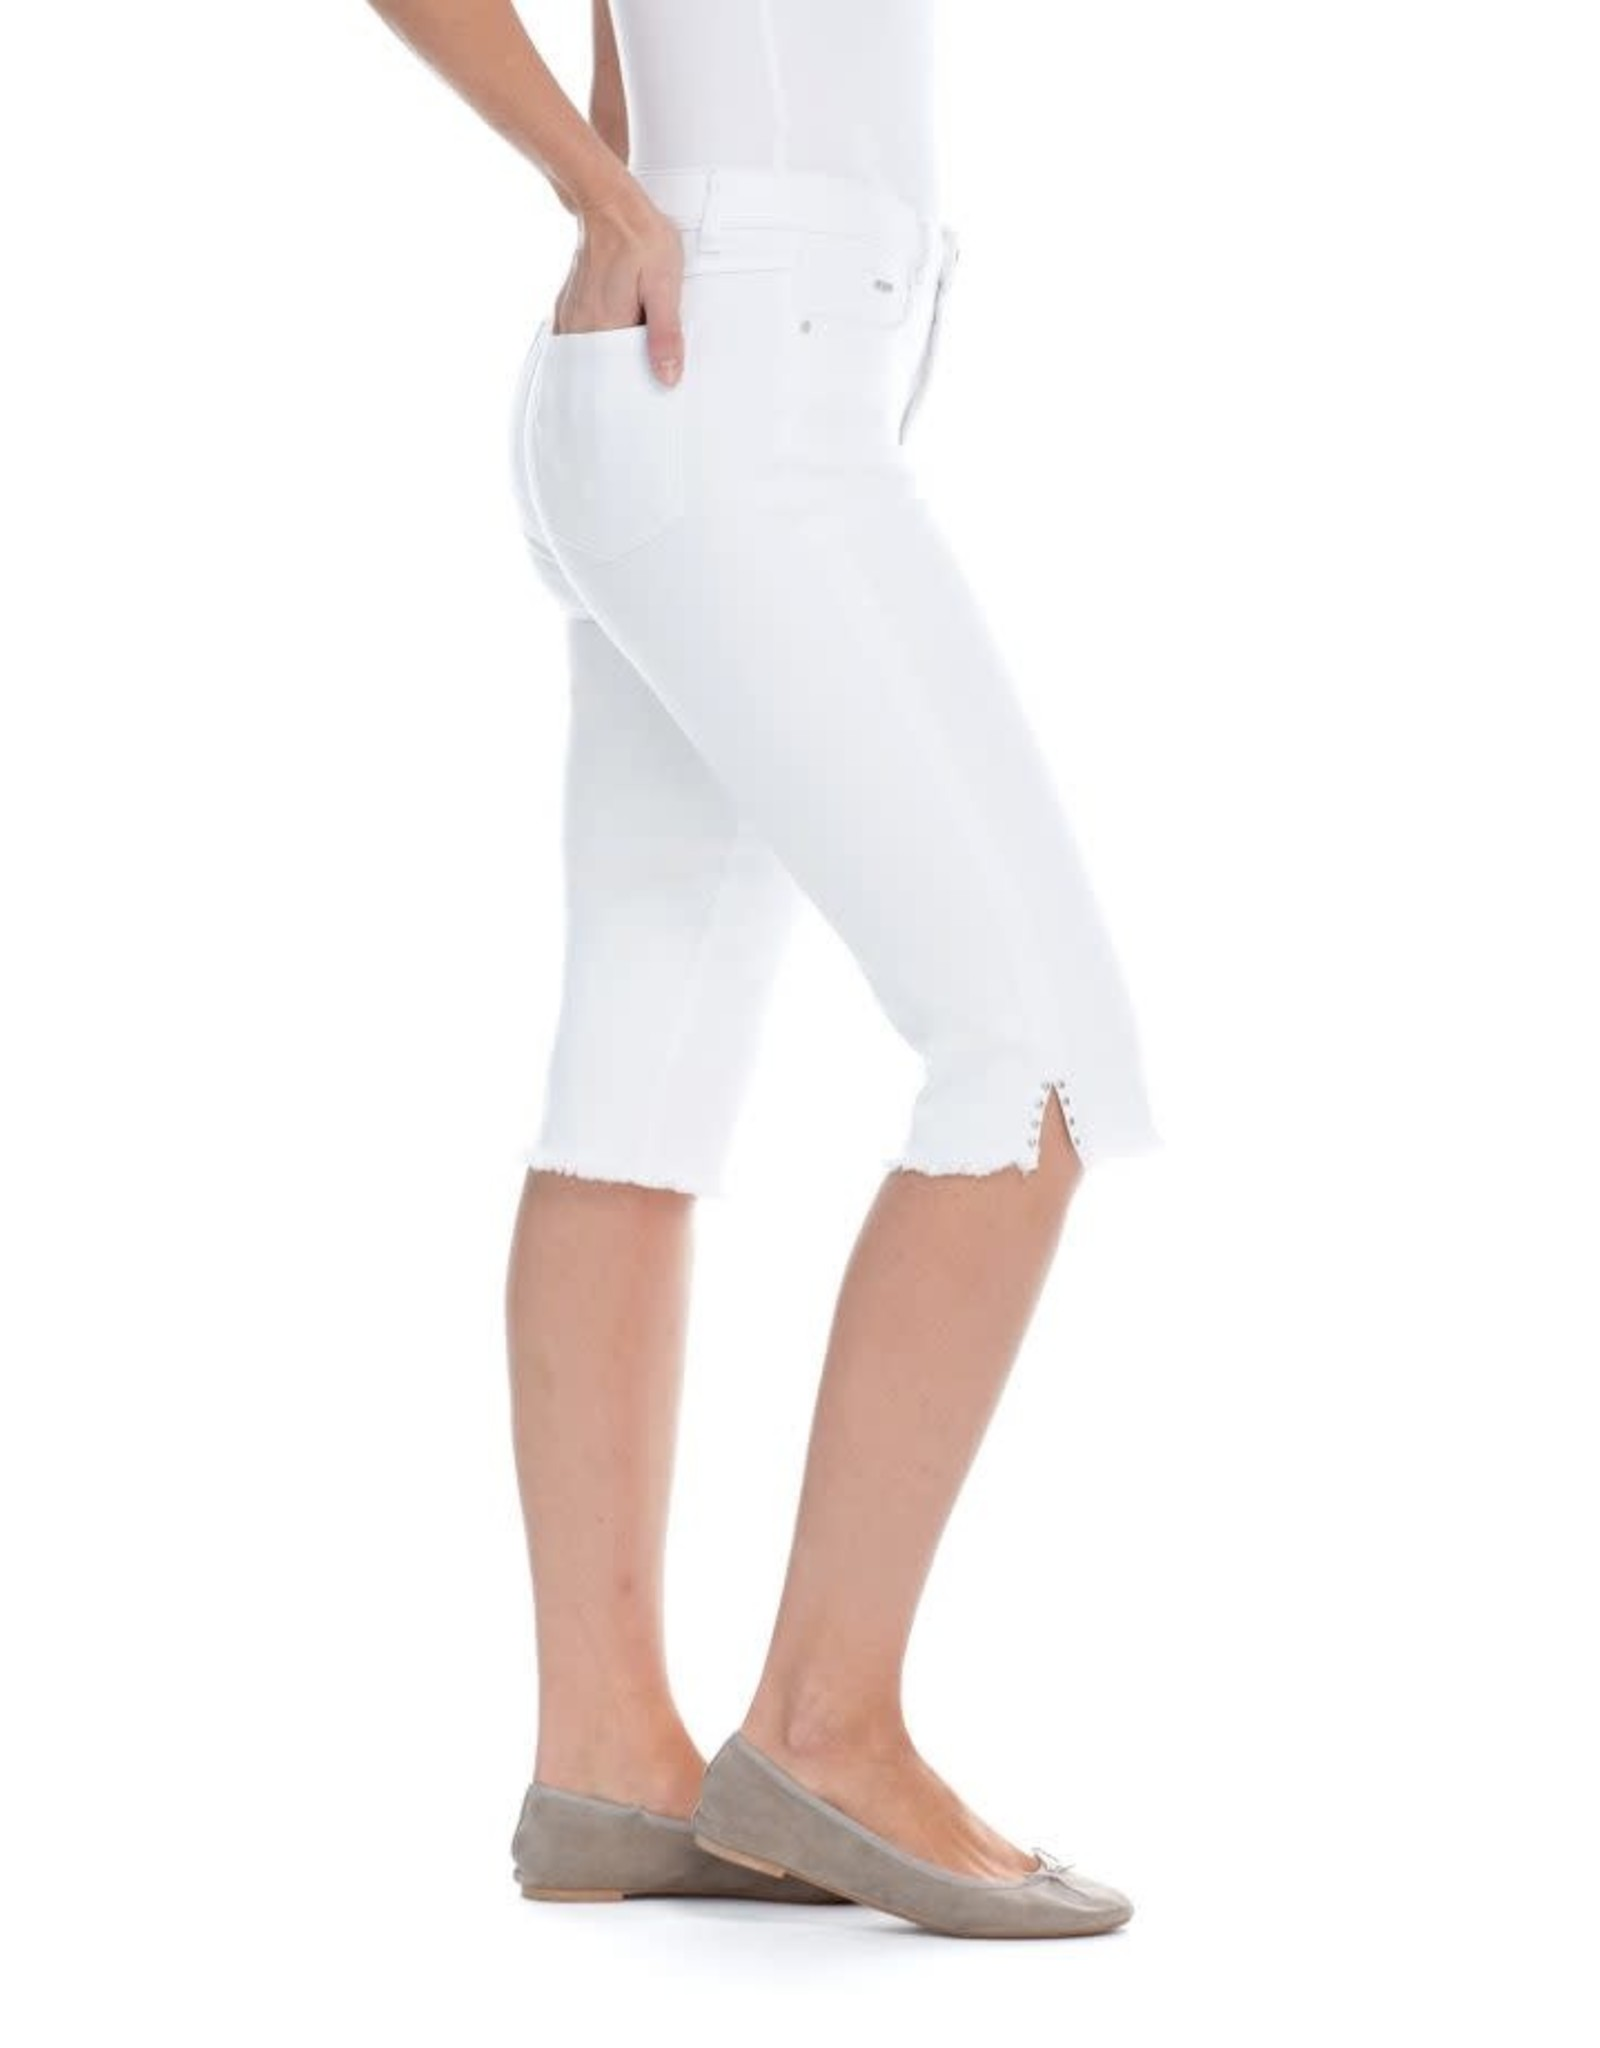 French Dressing Jeans French Dressing Jeans Olivia Pedal Pusher